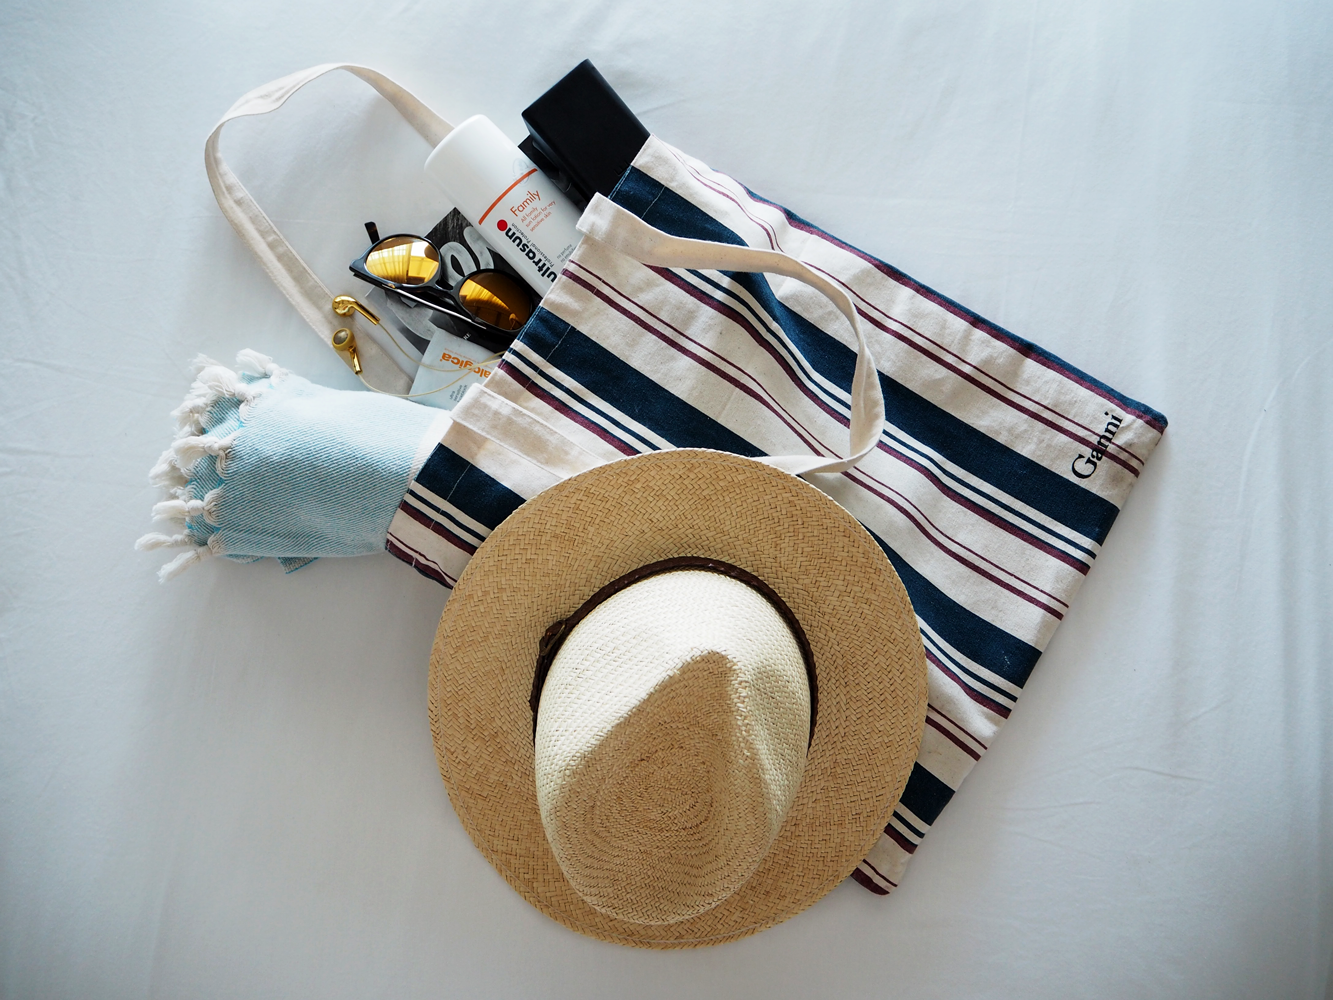 StyleAndMinimalism | Travel | Antigua | Ganni bag, panama, hammam towel, Kite sunglasses, Ultrasun sunscreen, Dermalogica face suncream, Happy Plugs earphones & Remix magazine